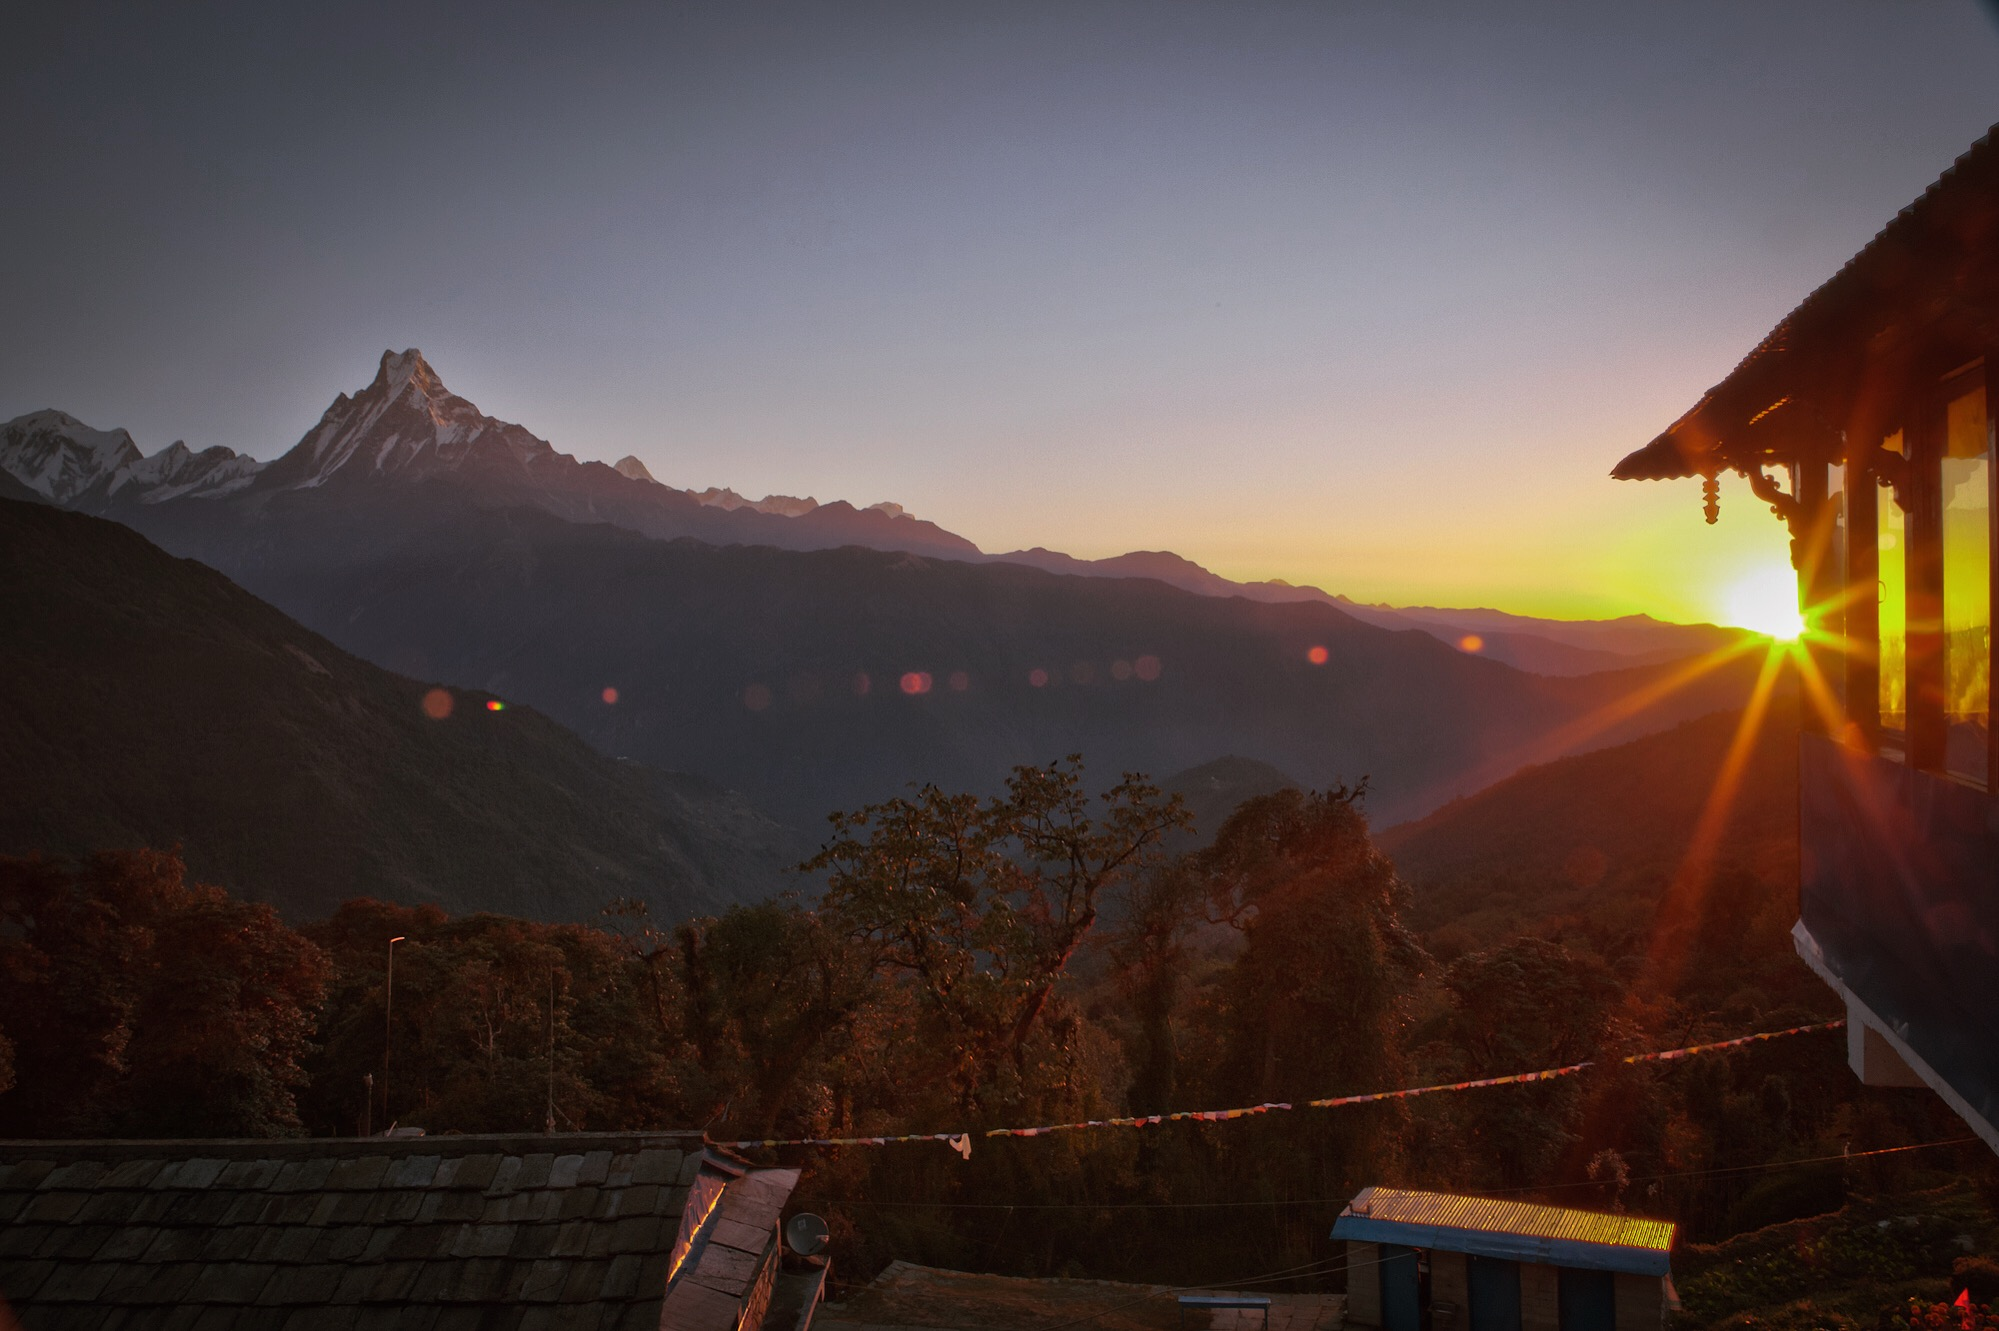 """Nov 10.1, 2016   Tadapani was covered in a cloud when we arrived yesterday. The mountains were a morning surprise. To the left is Machhapuchhre, otherwise known as """"Fish Tail"""", just a few metres short of 7,000. It is revered as a sacred peak, therefore no human has set foot on its summit."""